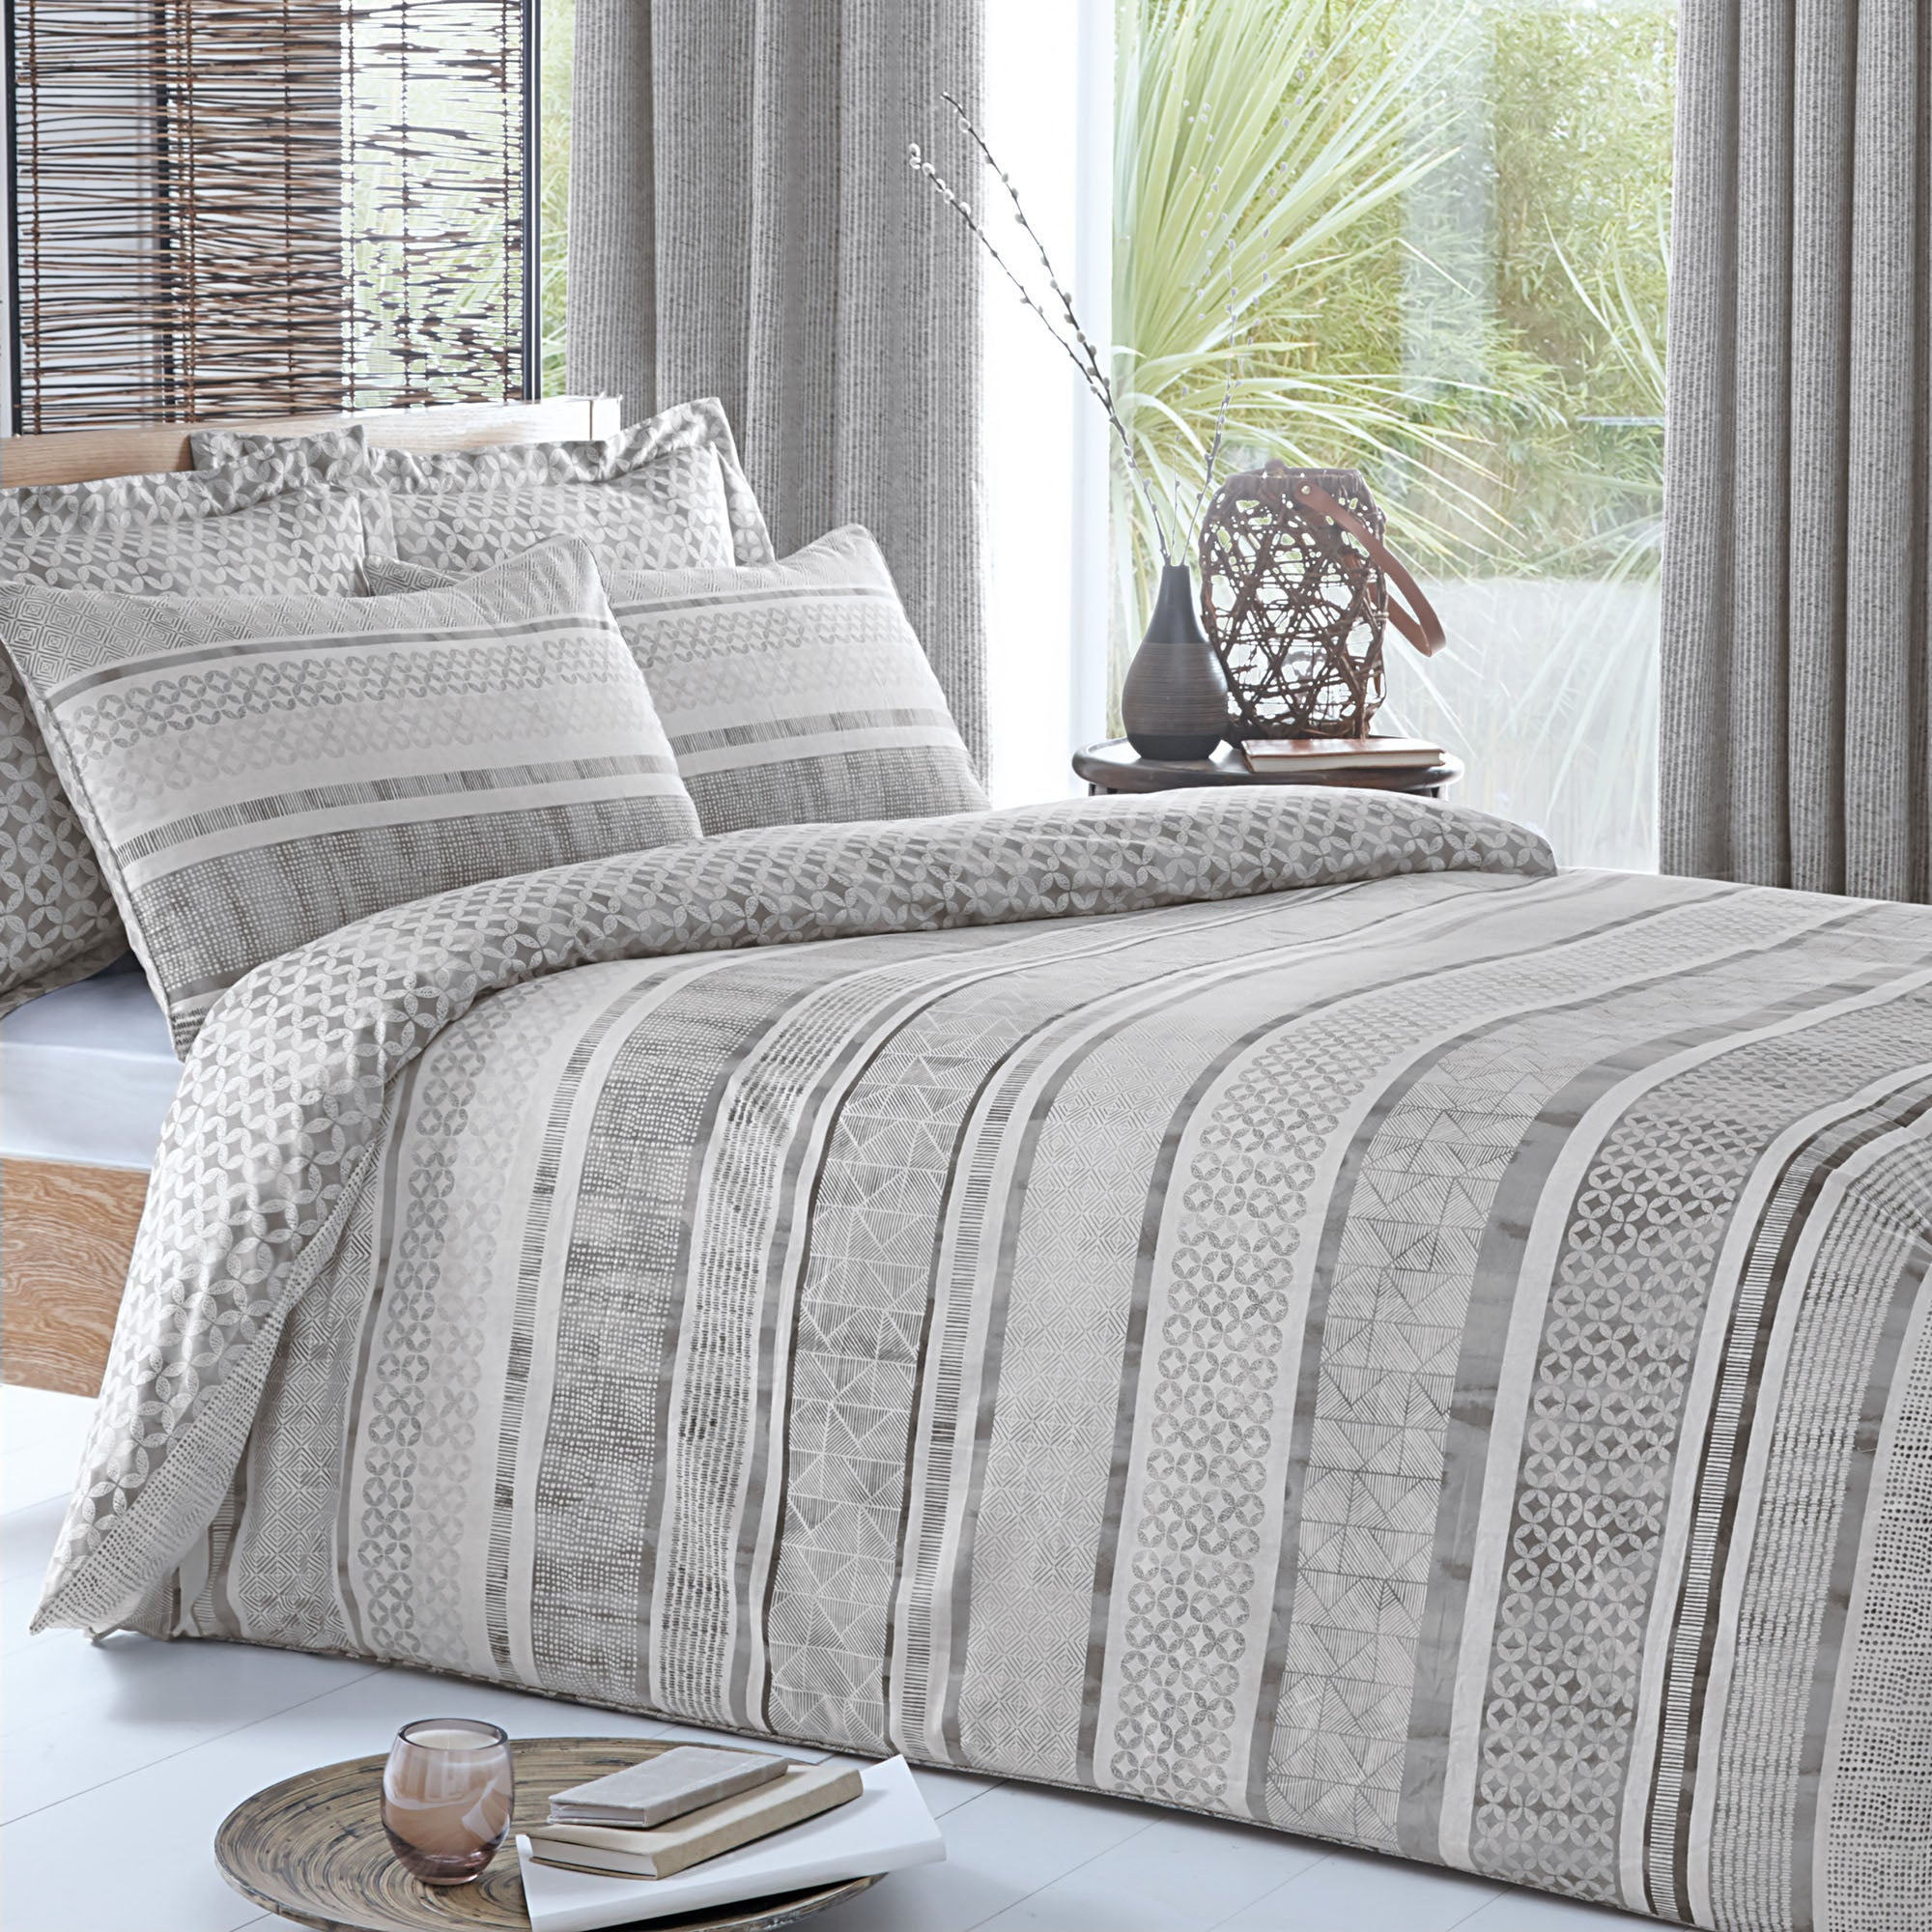 Shop charcoal duvet covers from Crane & Canopy. Combining soft tones with modern textures, the Valencia Charcoal gray duvet cover looks voluminous and elegant. Bedding + Duvet Covers + All Duvet Covers; Charcoal Grey Thread Count Sheet Set 1 (Fitted, Flat, & Pillow Cases).